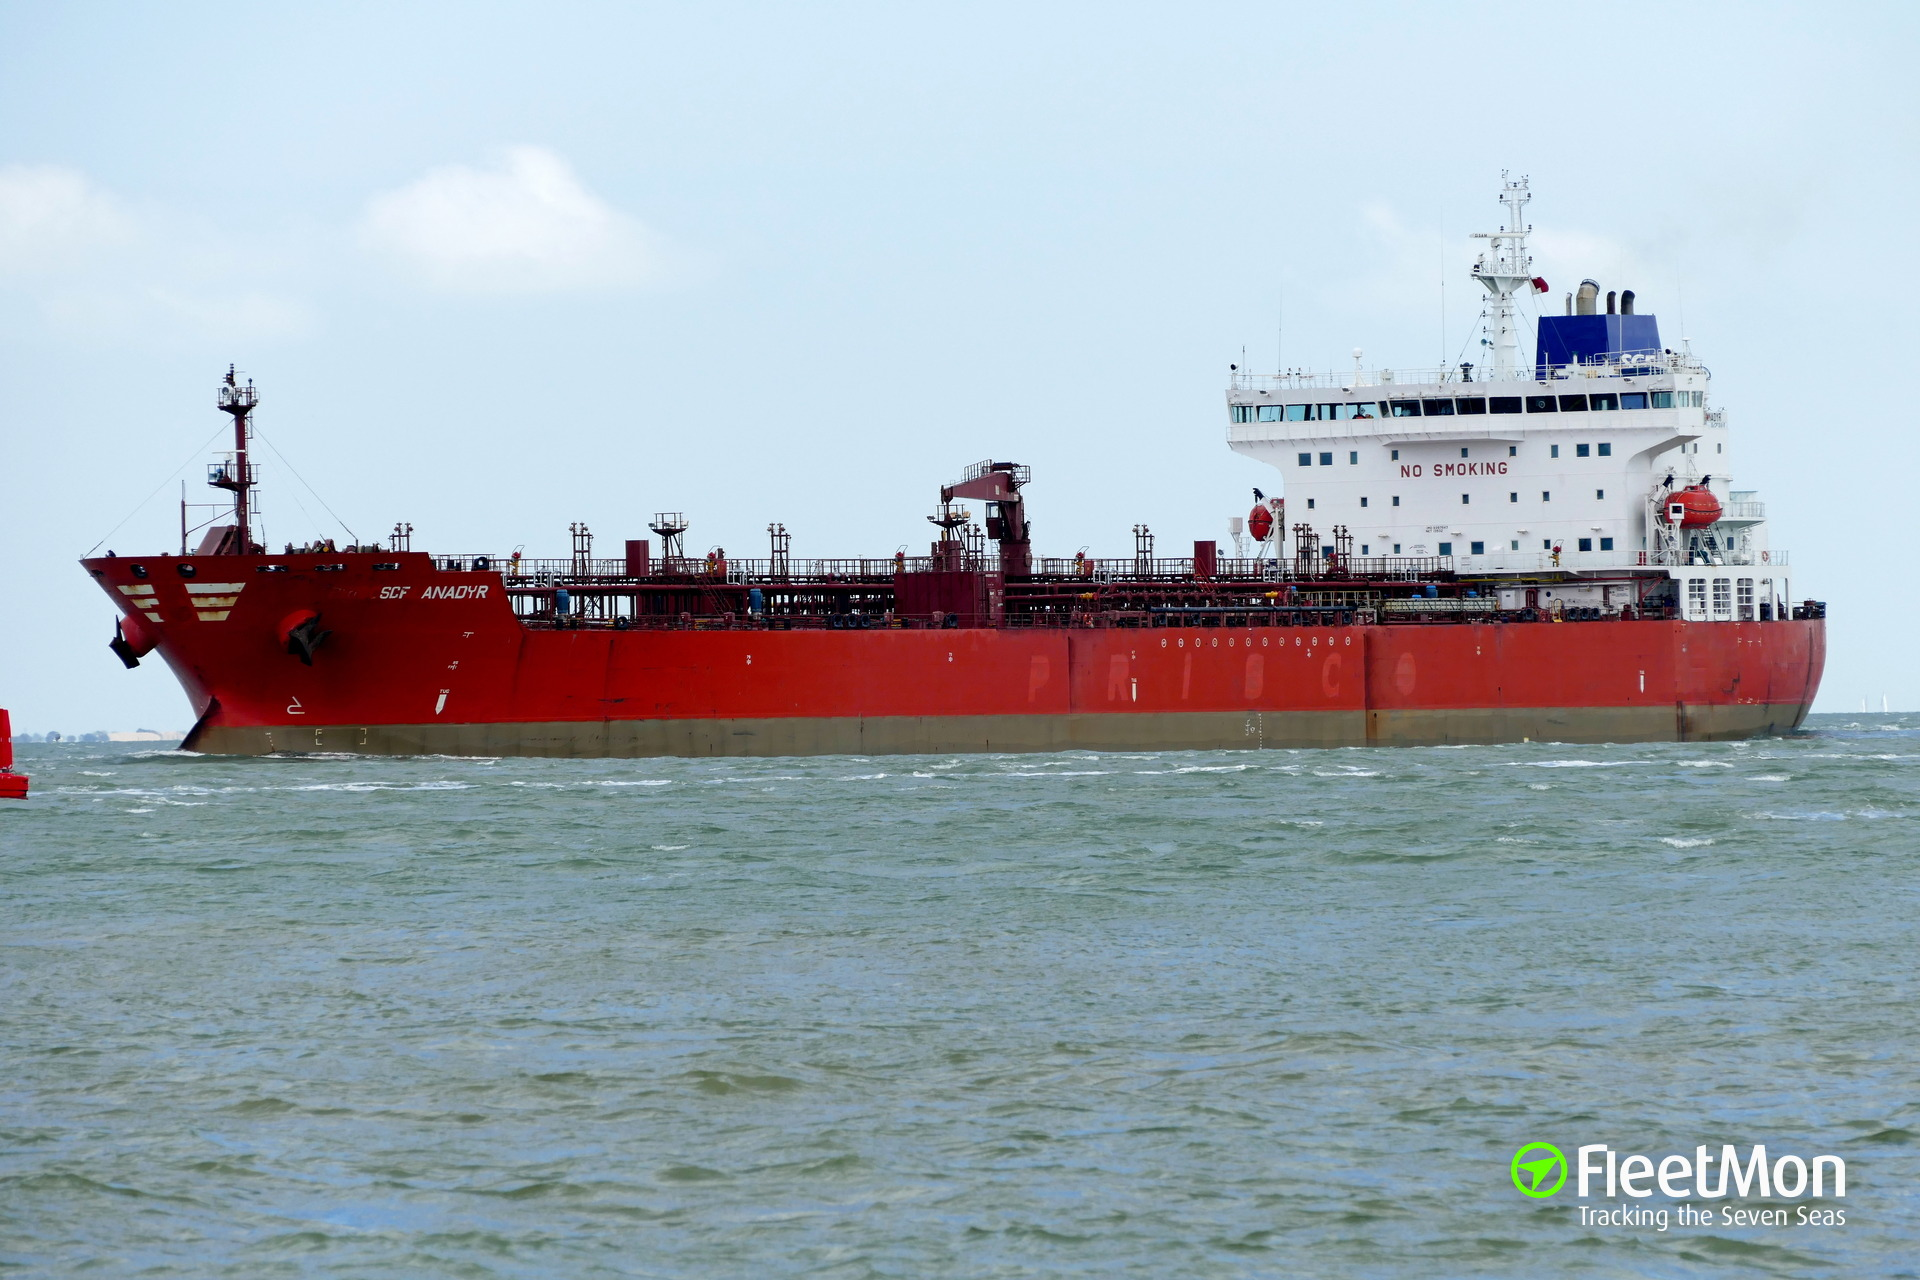 PRISCO's tanker PRISCO Alexandra detained in Cartagena with cocaine on board